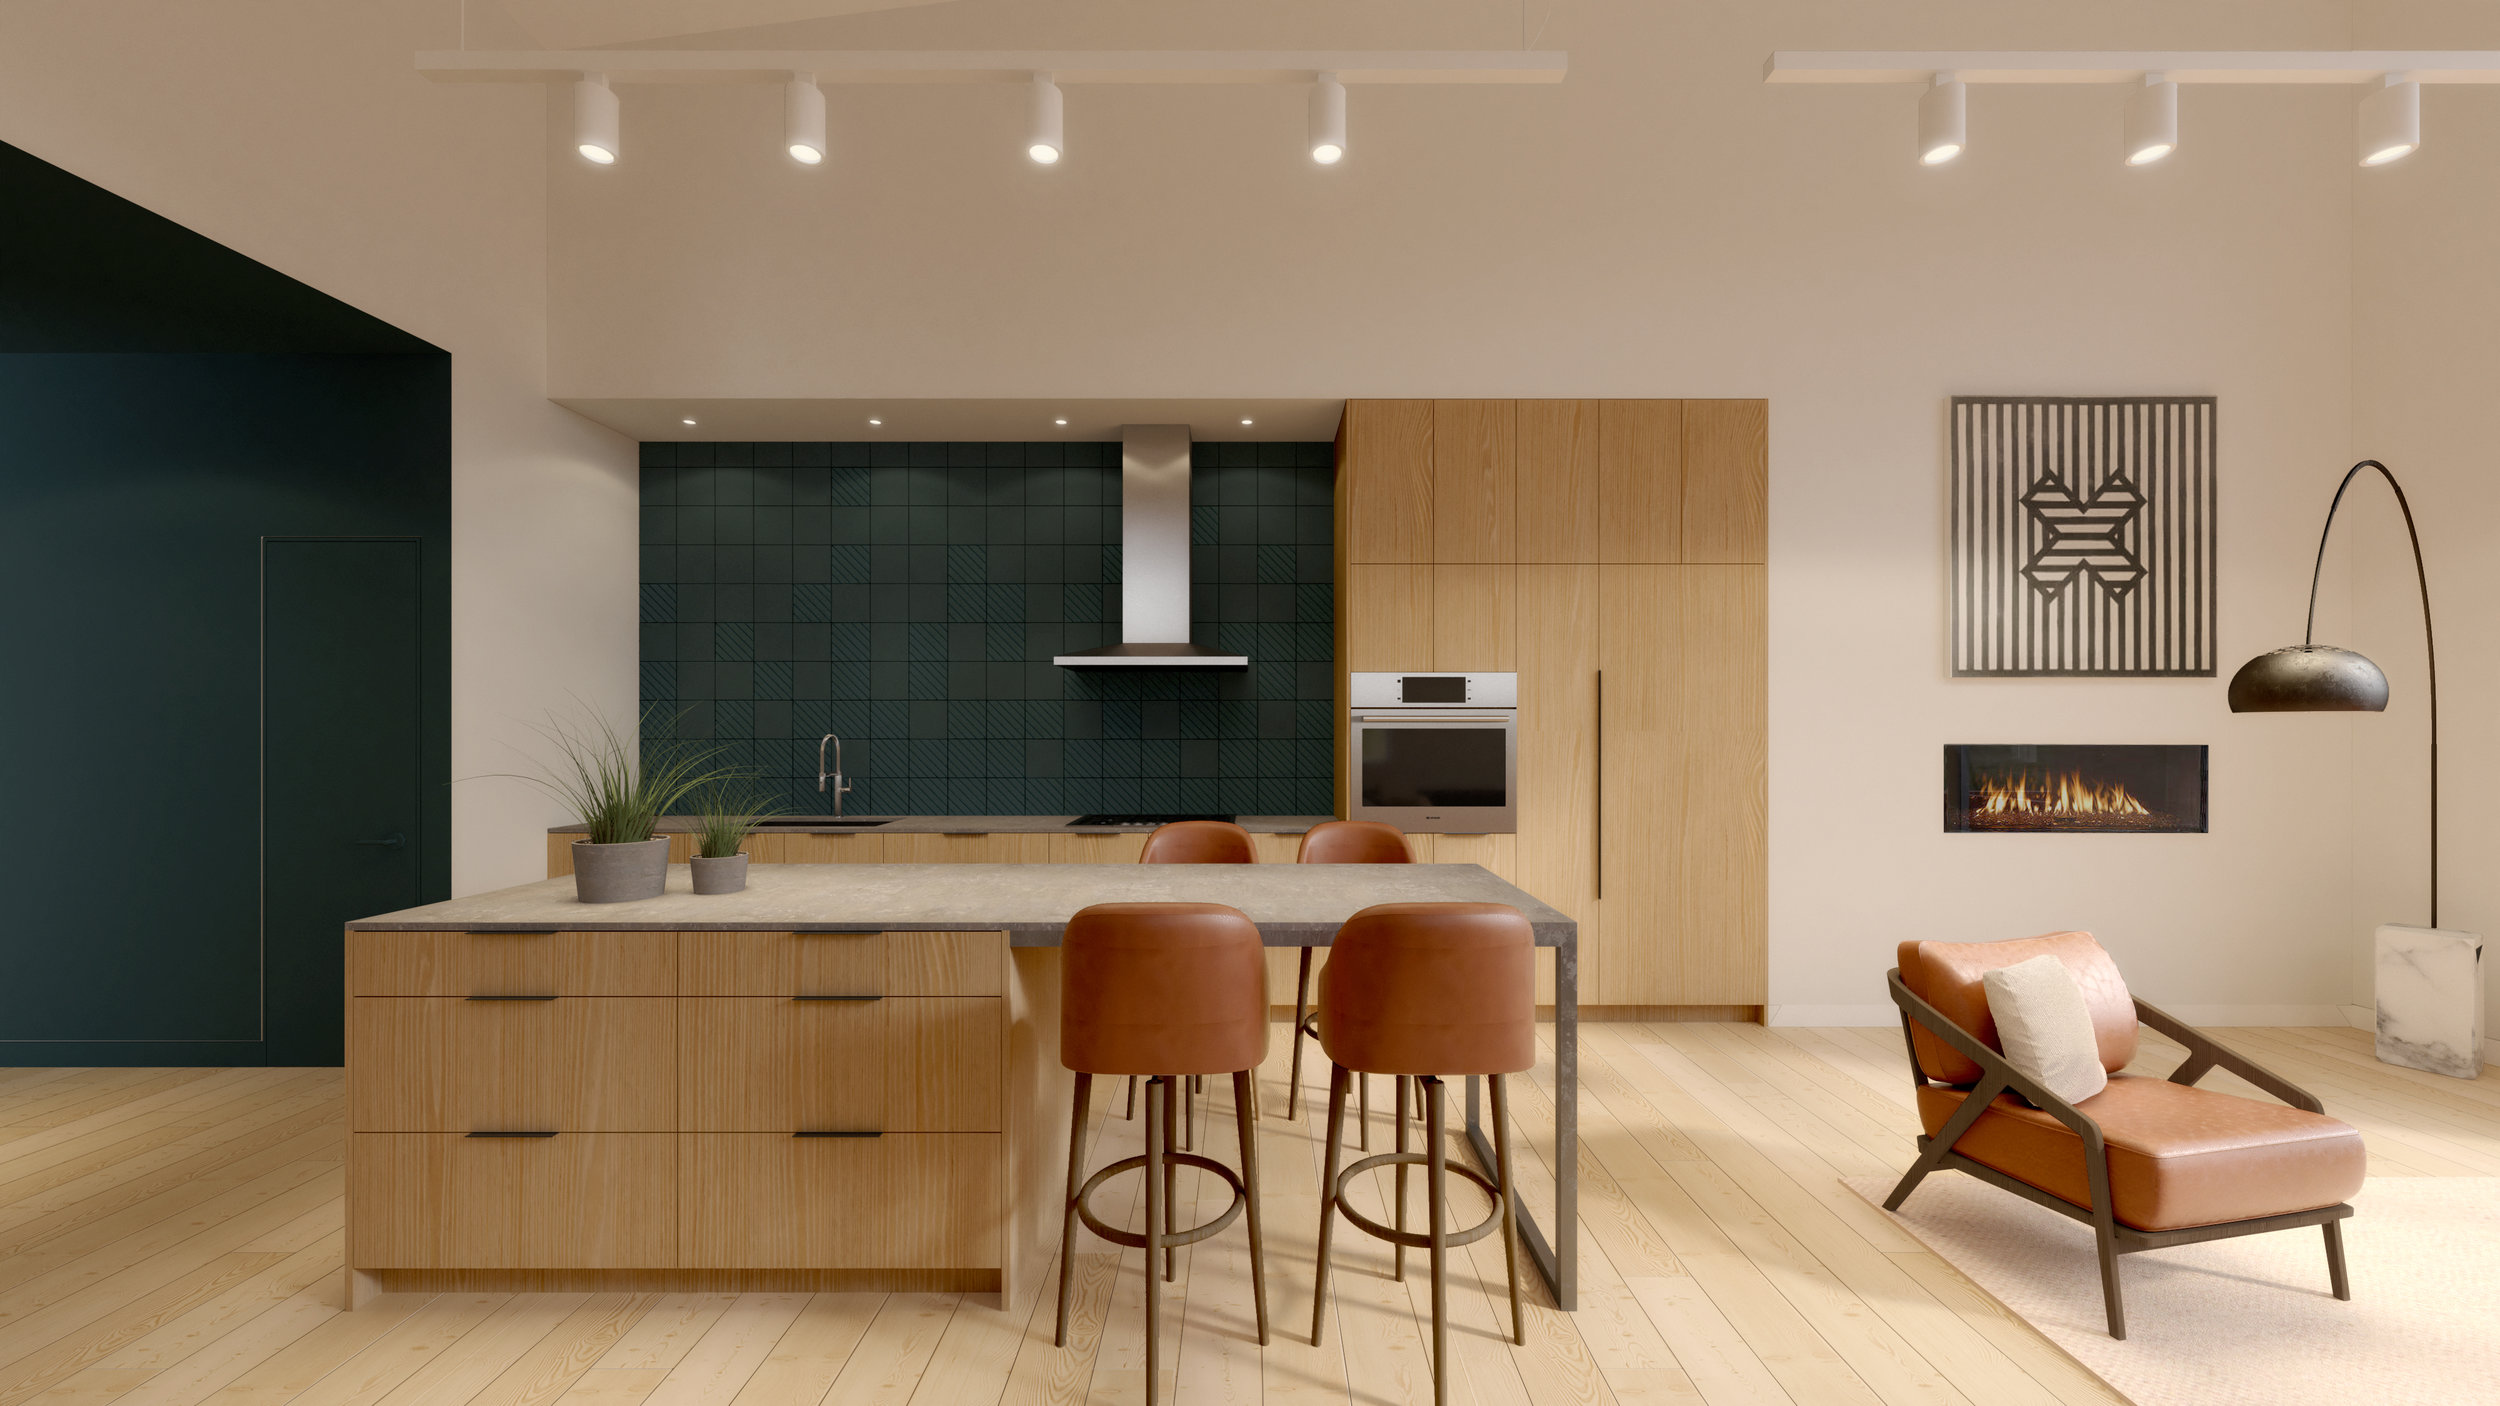 190130_Kitchen Elevation.jpg